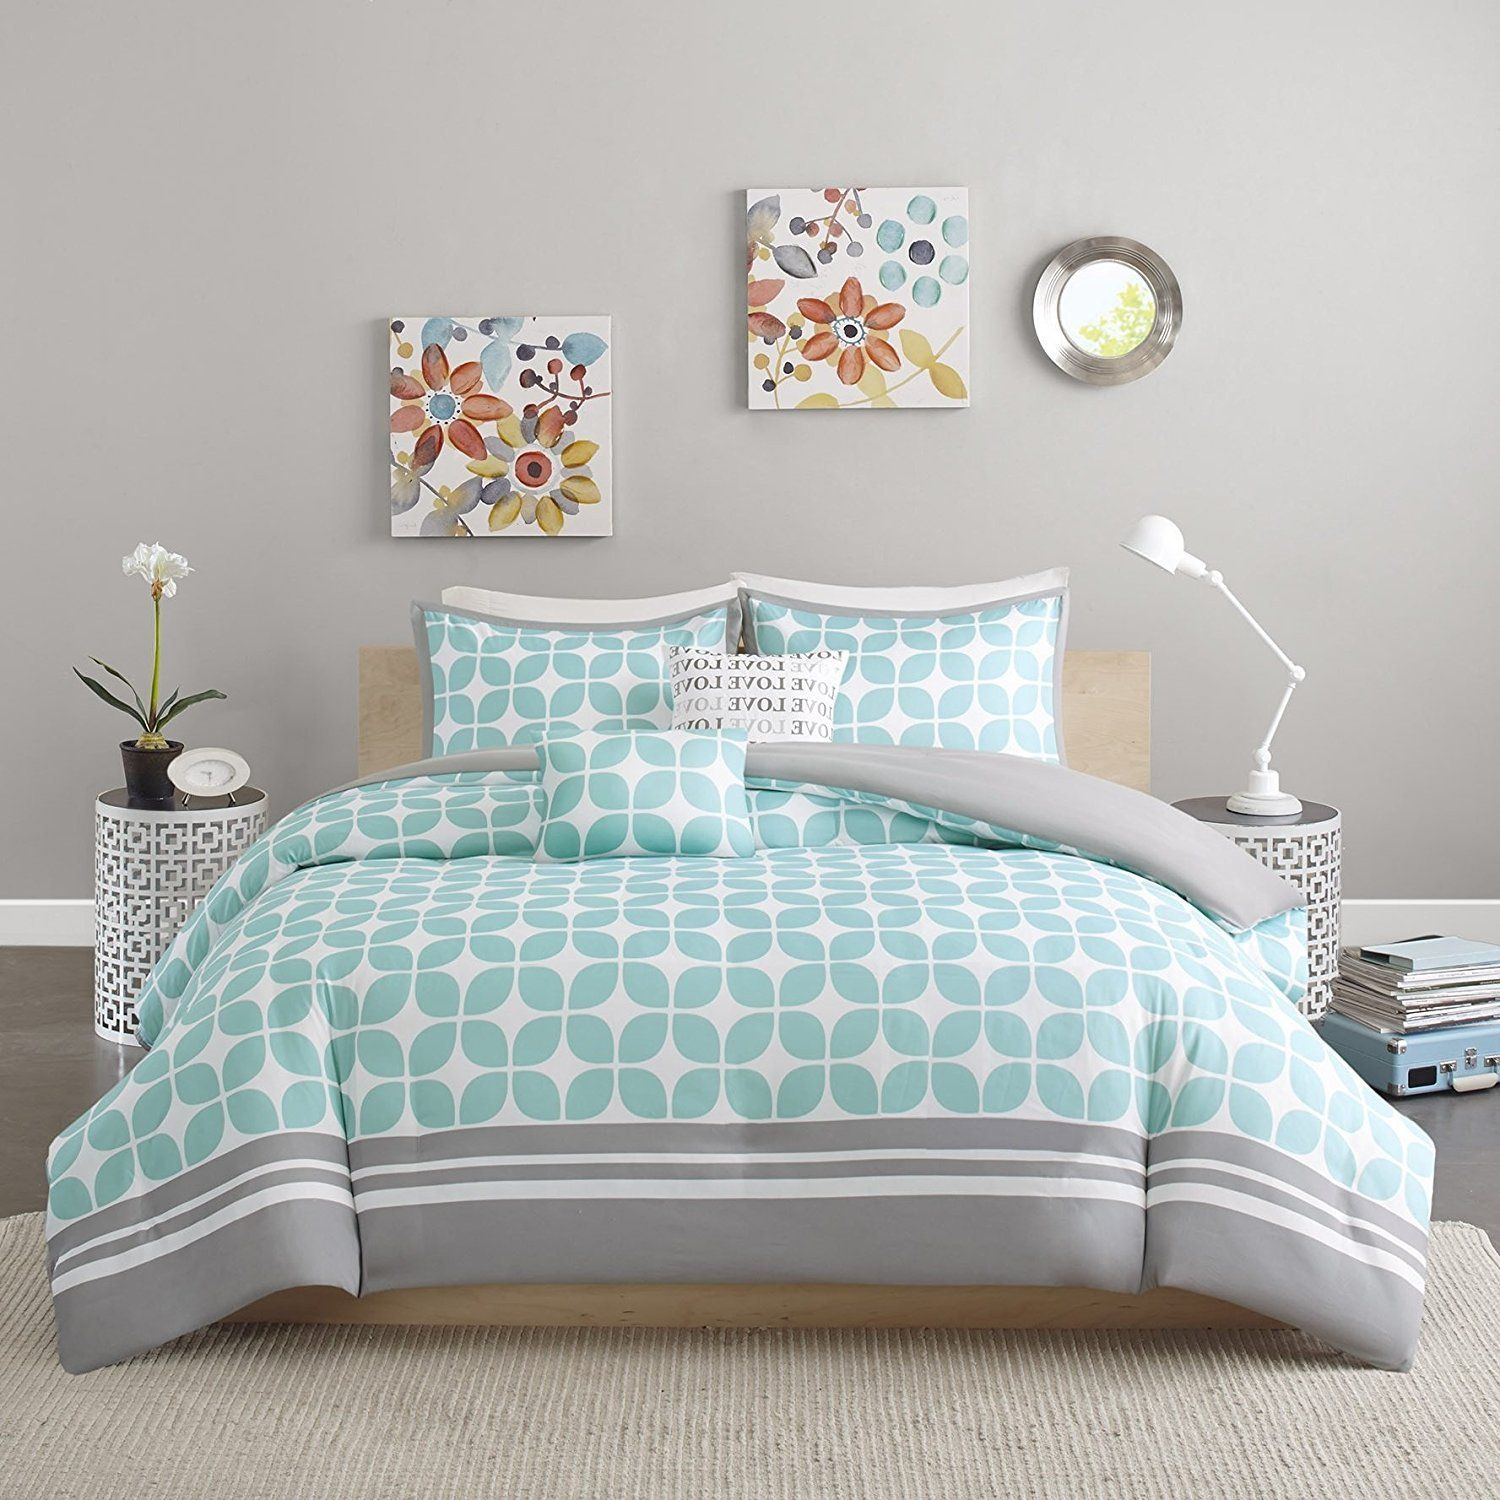 for picture teal grey beauty curtains with matching white com all bedding sets unbelievable wonderful dollclique org chevron blue designs modern home boatylicious bed and ideas